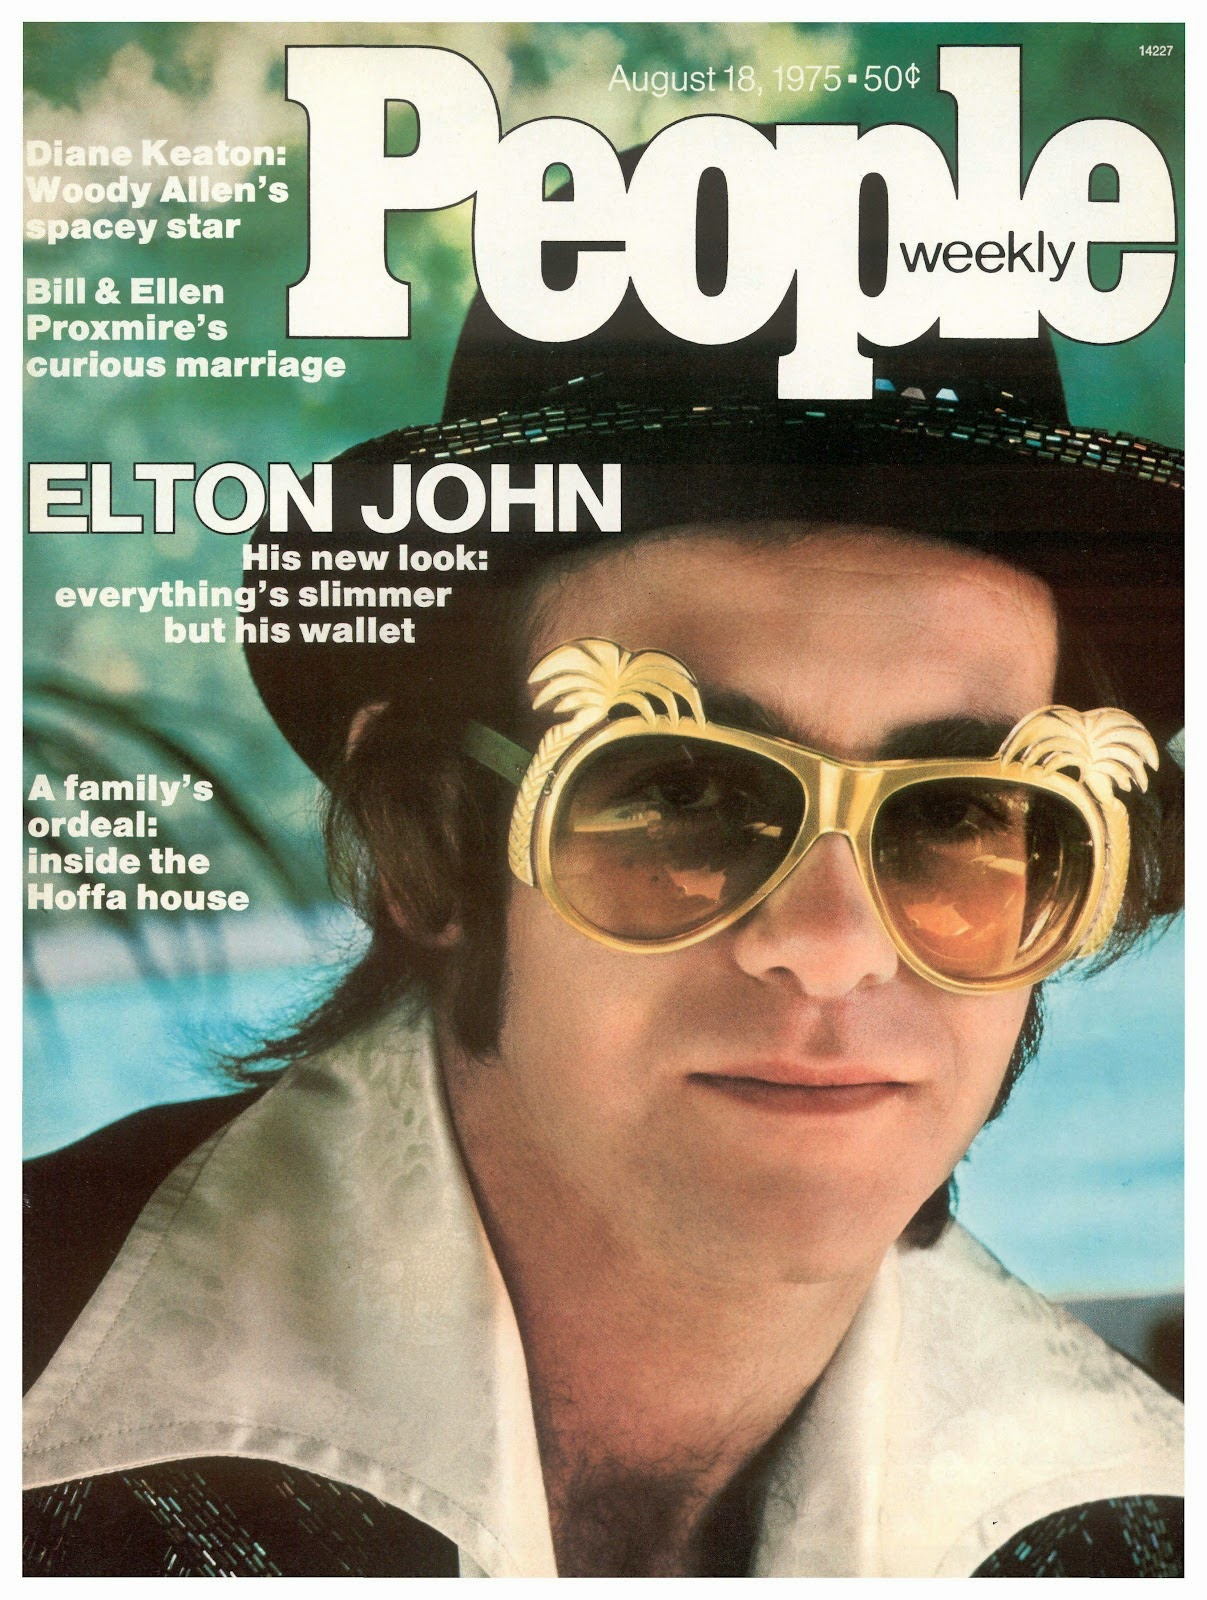 Elton John on the cover of People Magazine, August 18th 1975.   The sunglasses are probably by Anglo American.